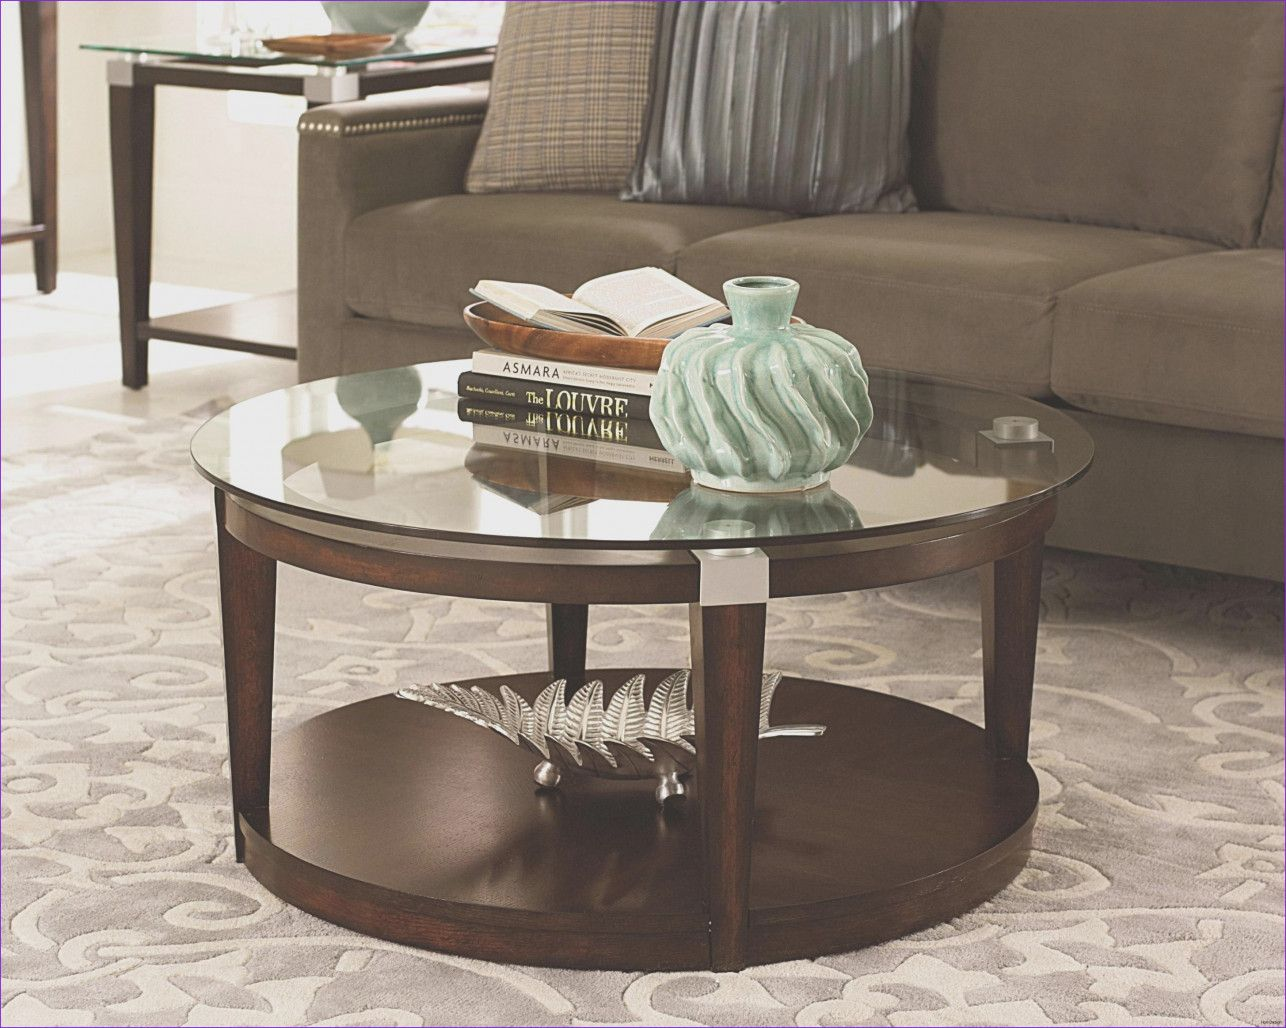 55 Elegant Coffee Tables And Tv Stands Matching 2017 Round Coffee Table Decor Round Wood Coffee Table Round Glass Coffee Table [ 1028 x 1286 Pixel ]